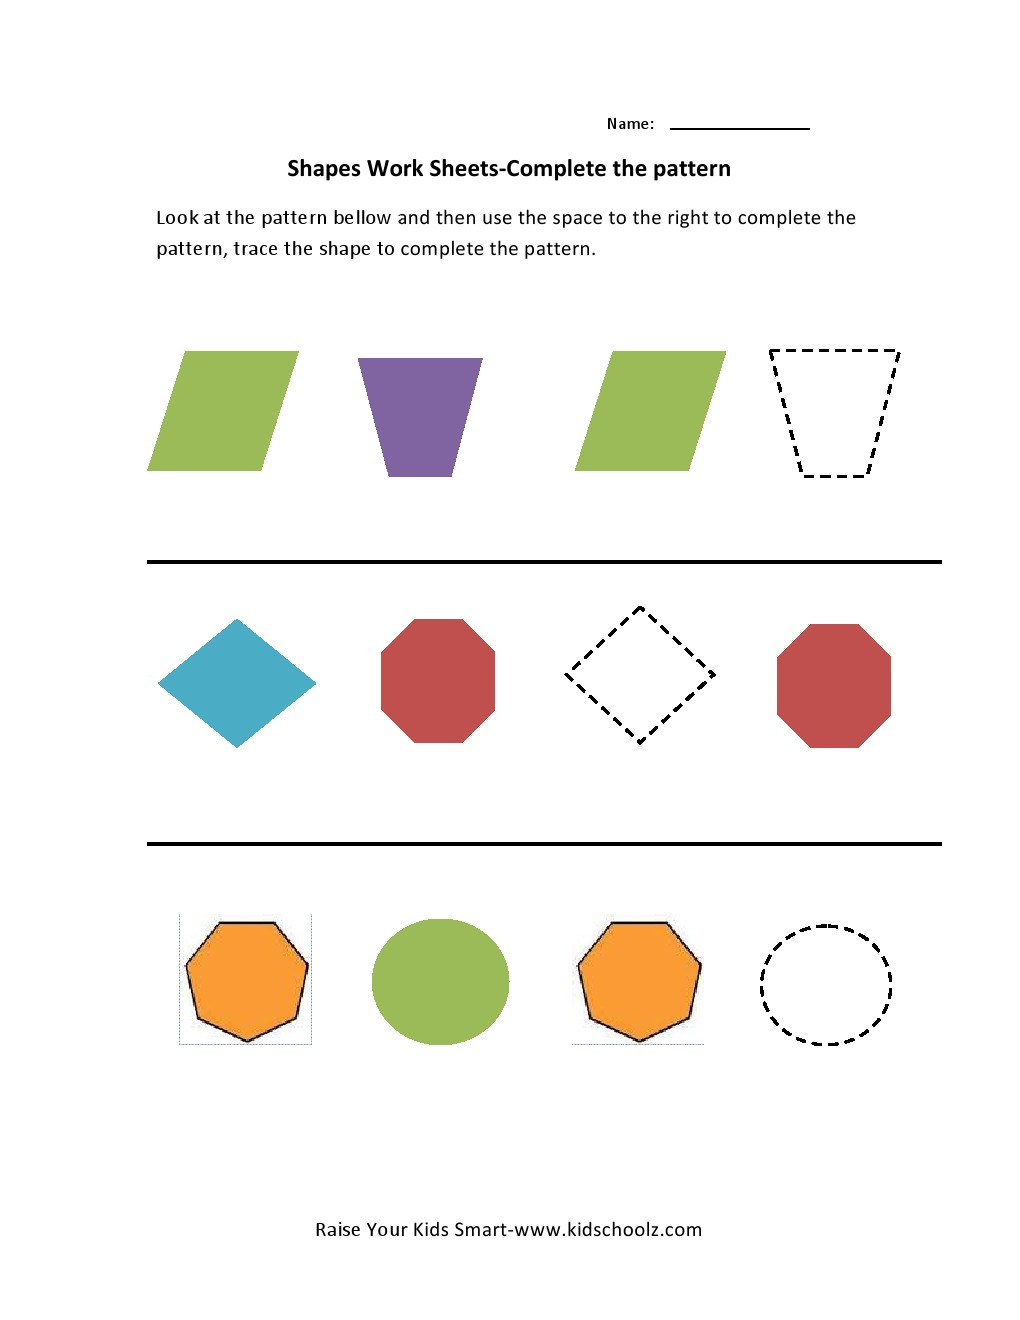 Shapes Pattern Recognition Worksheets - Kidschoolz